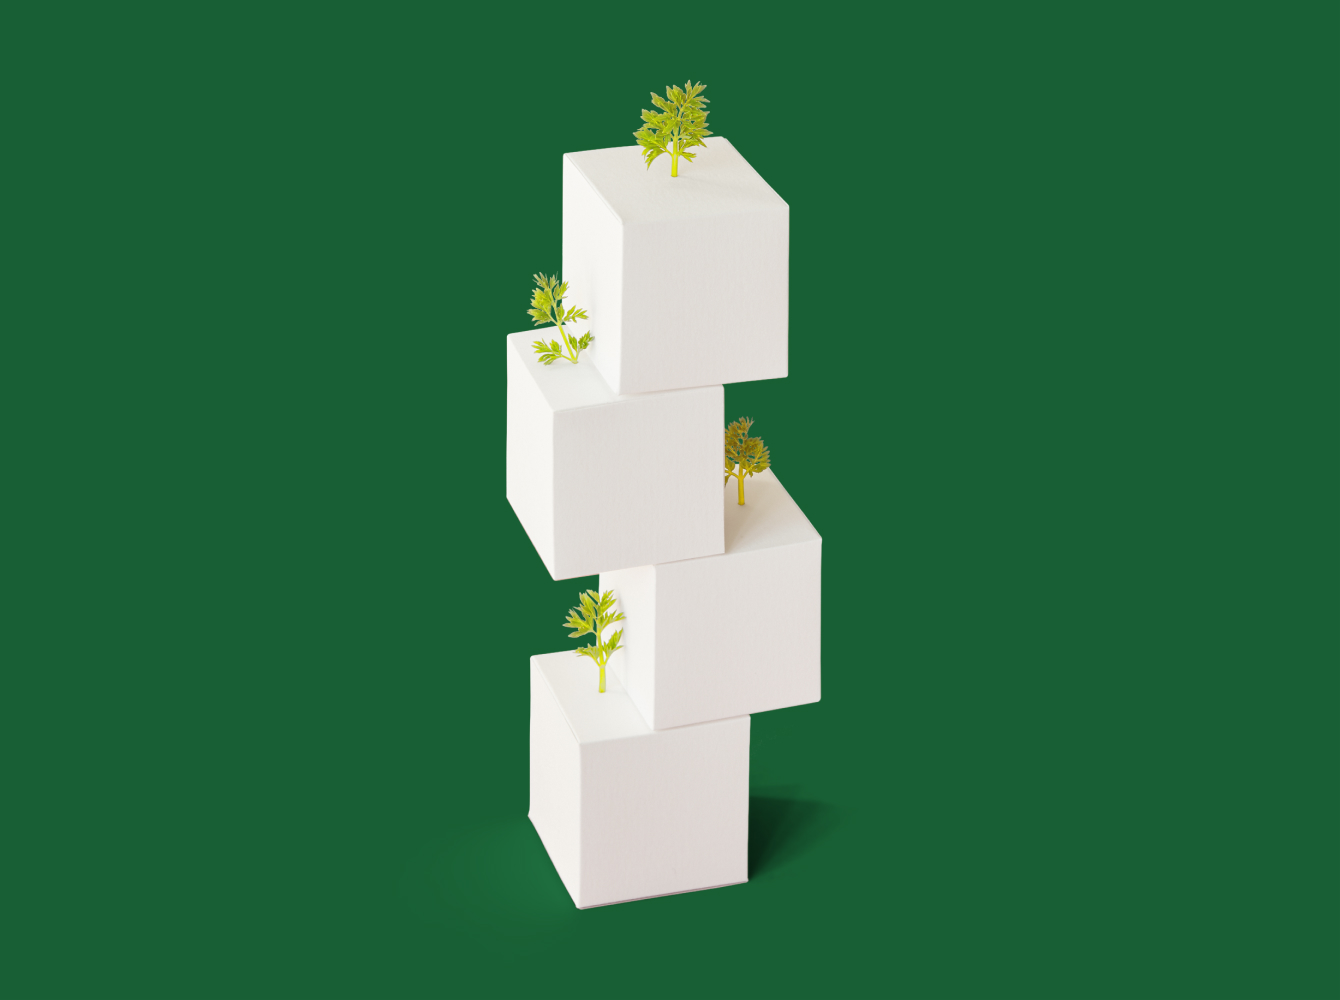 White blocks with trees